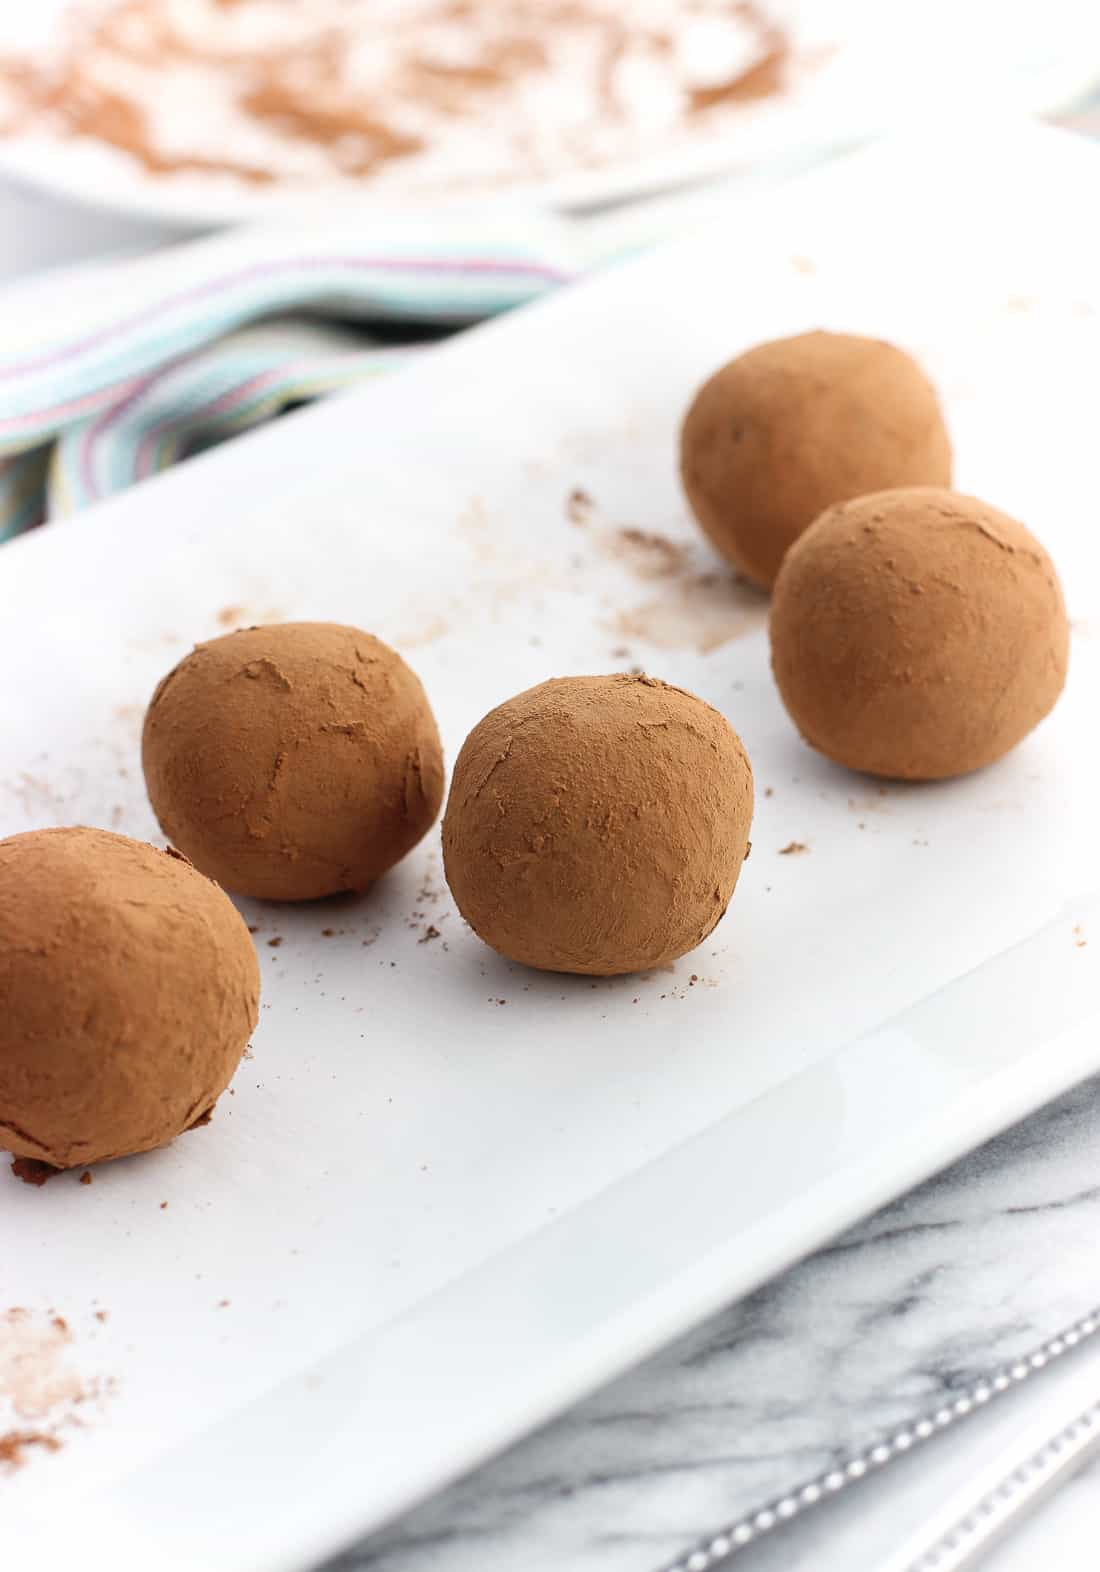 Five truffles rolled in cocoa powder on a rectangular ceramic serving tray